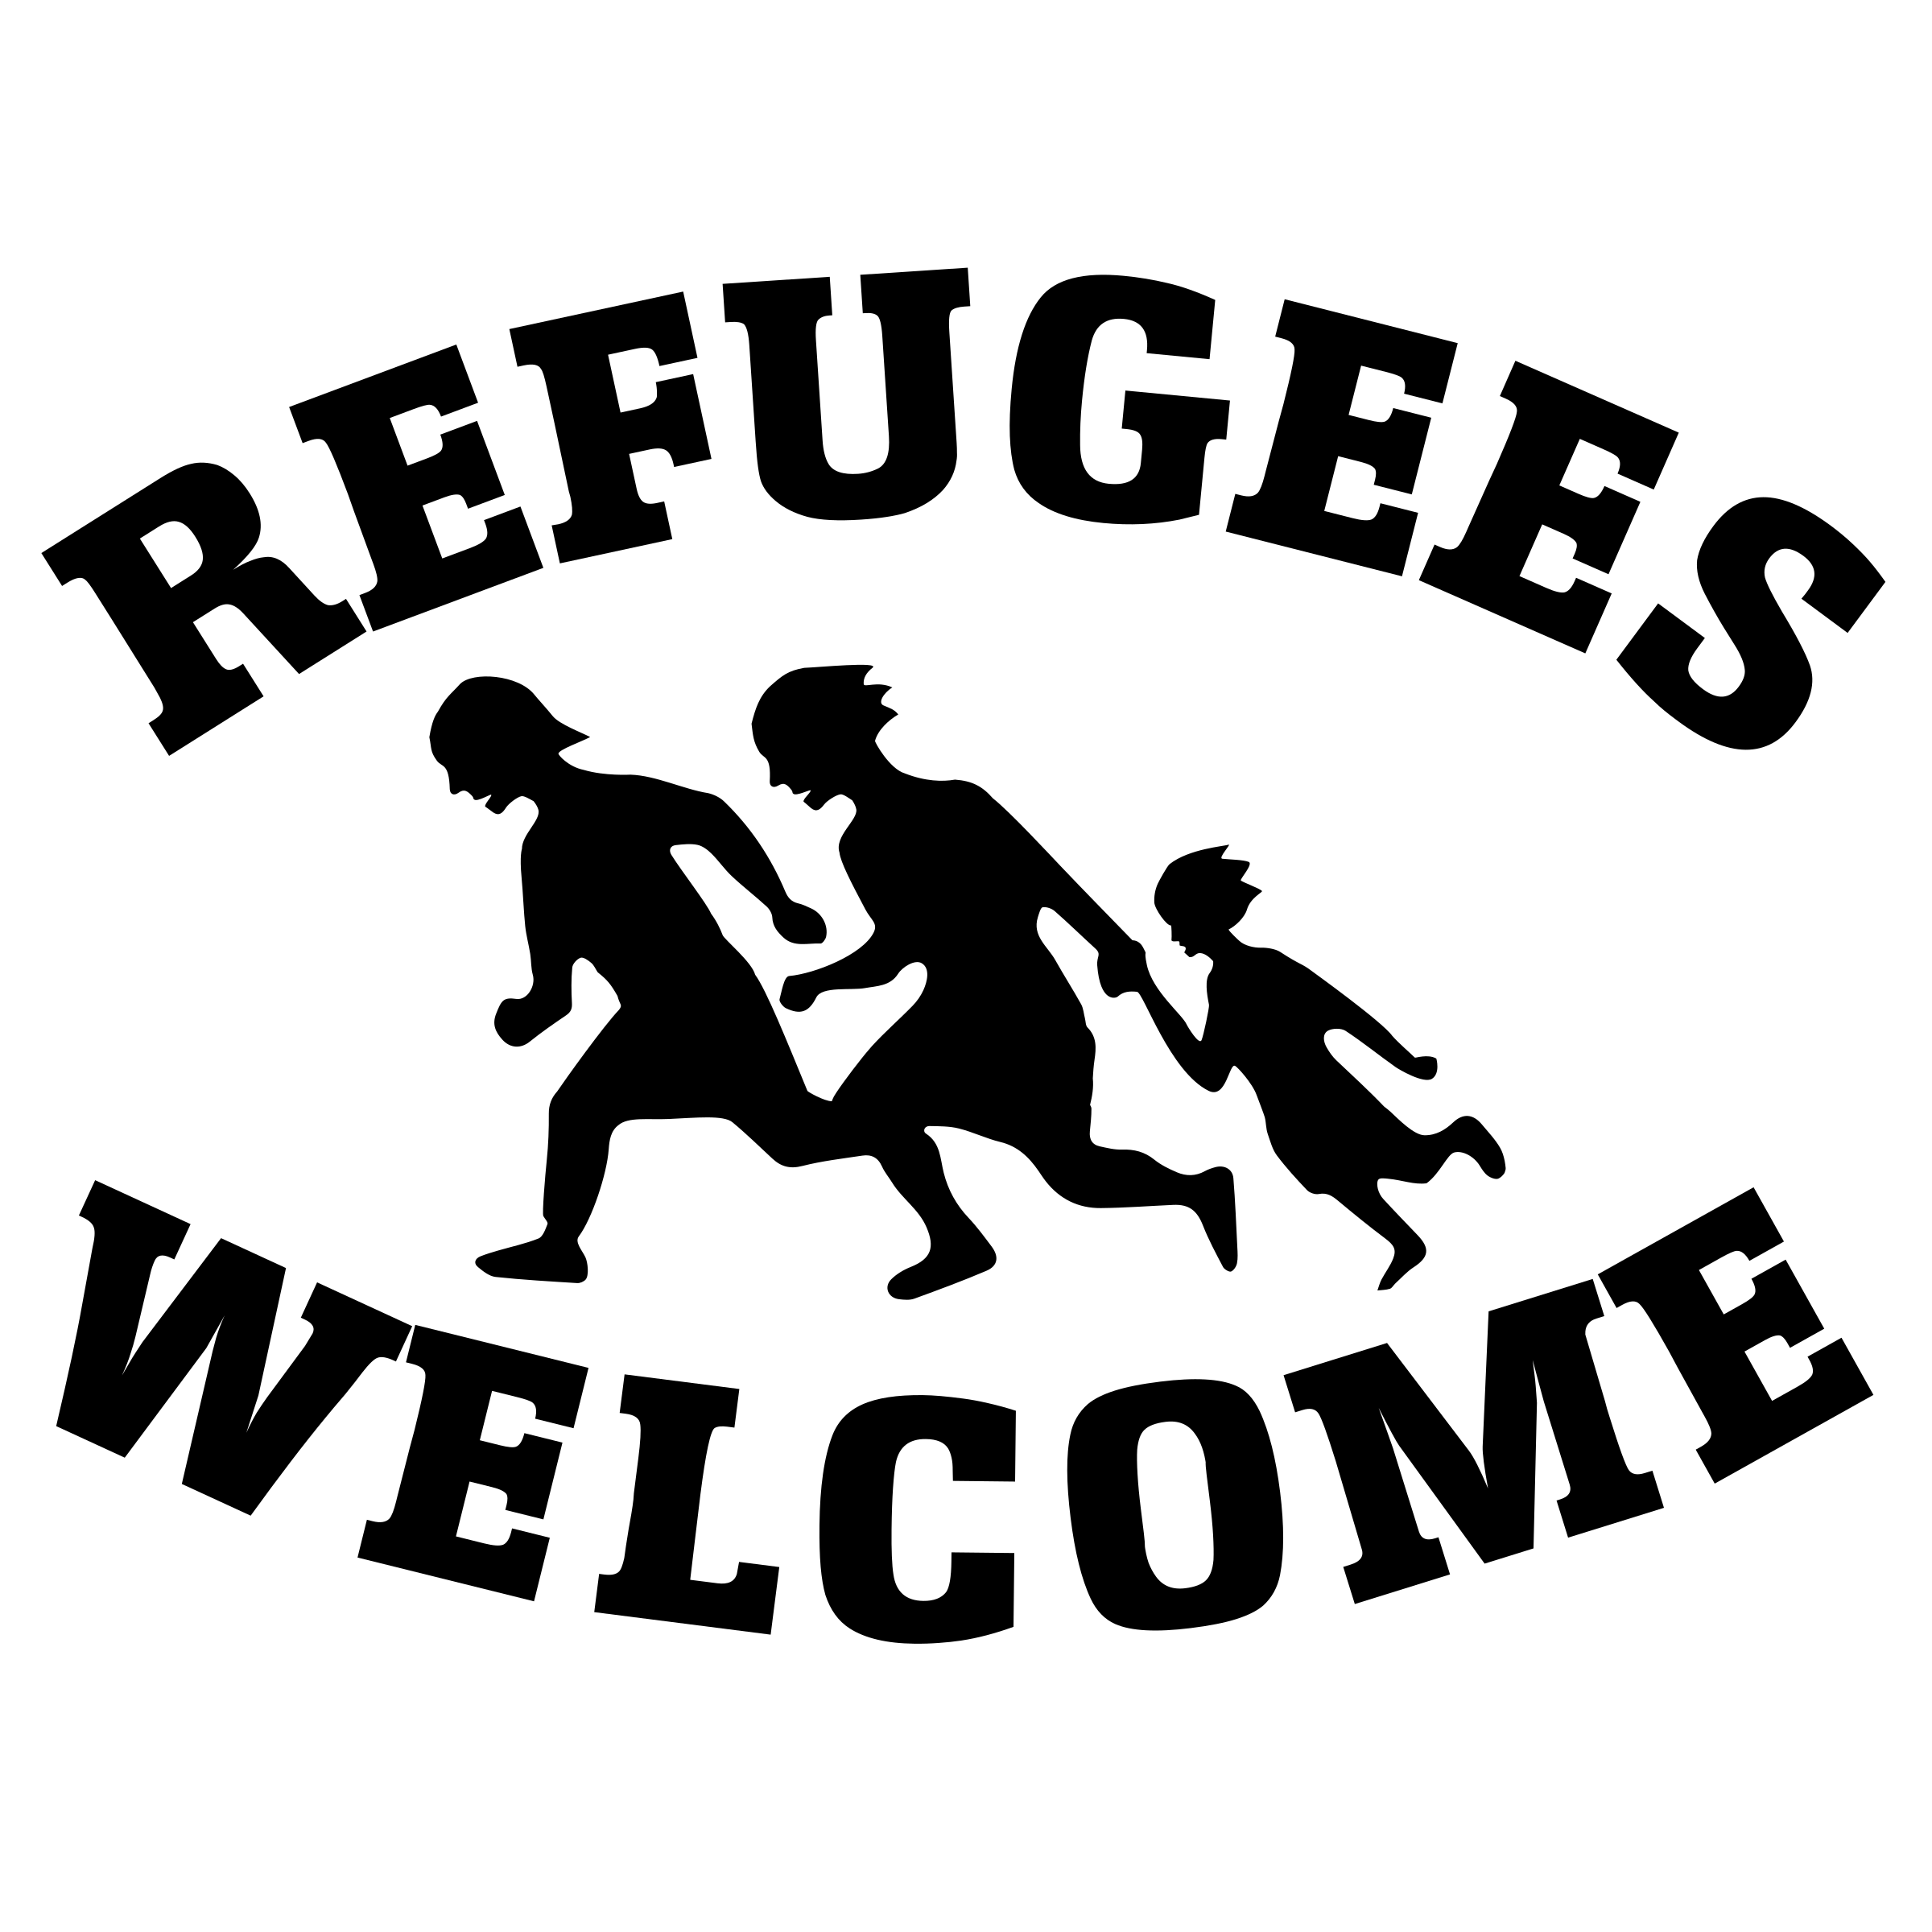 Refugees Clipart